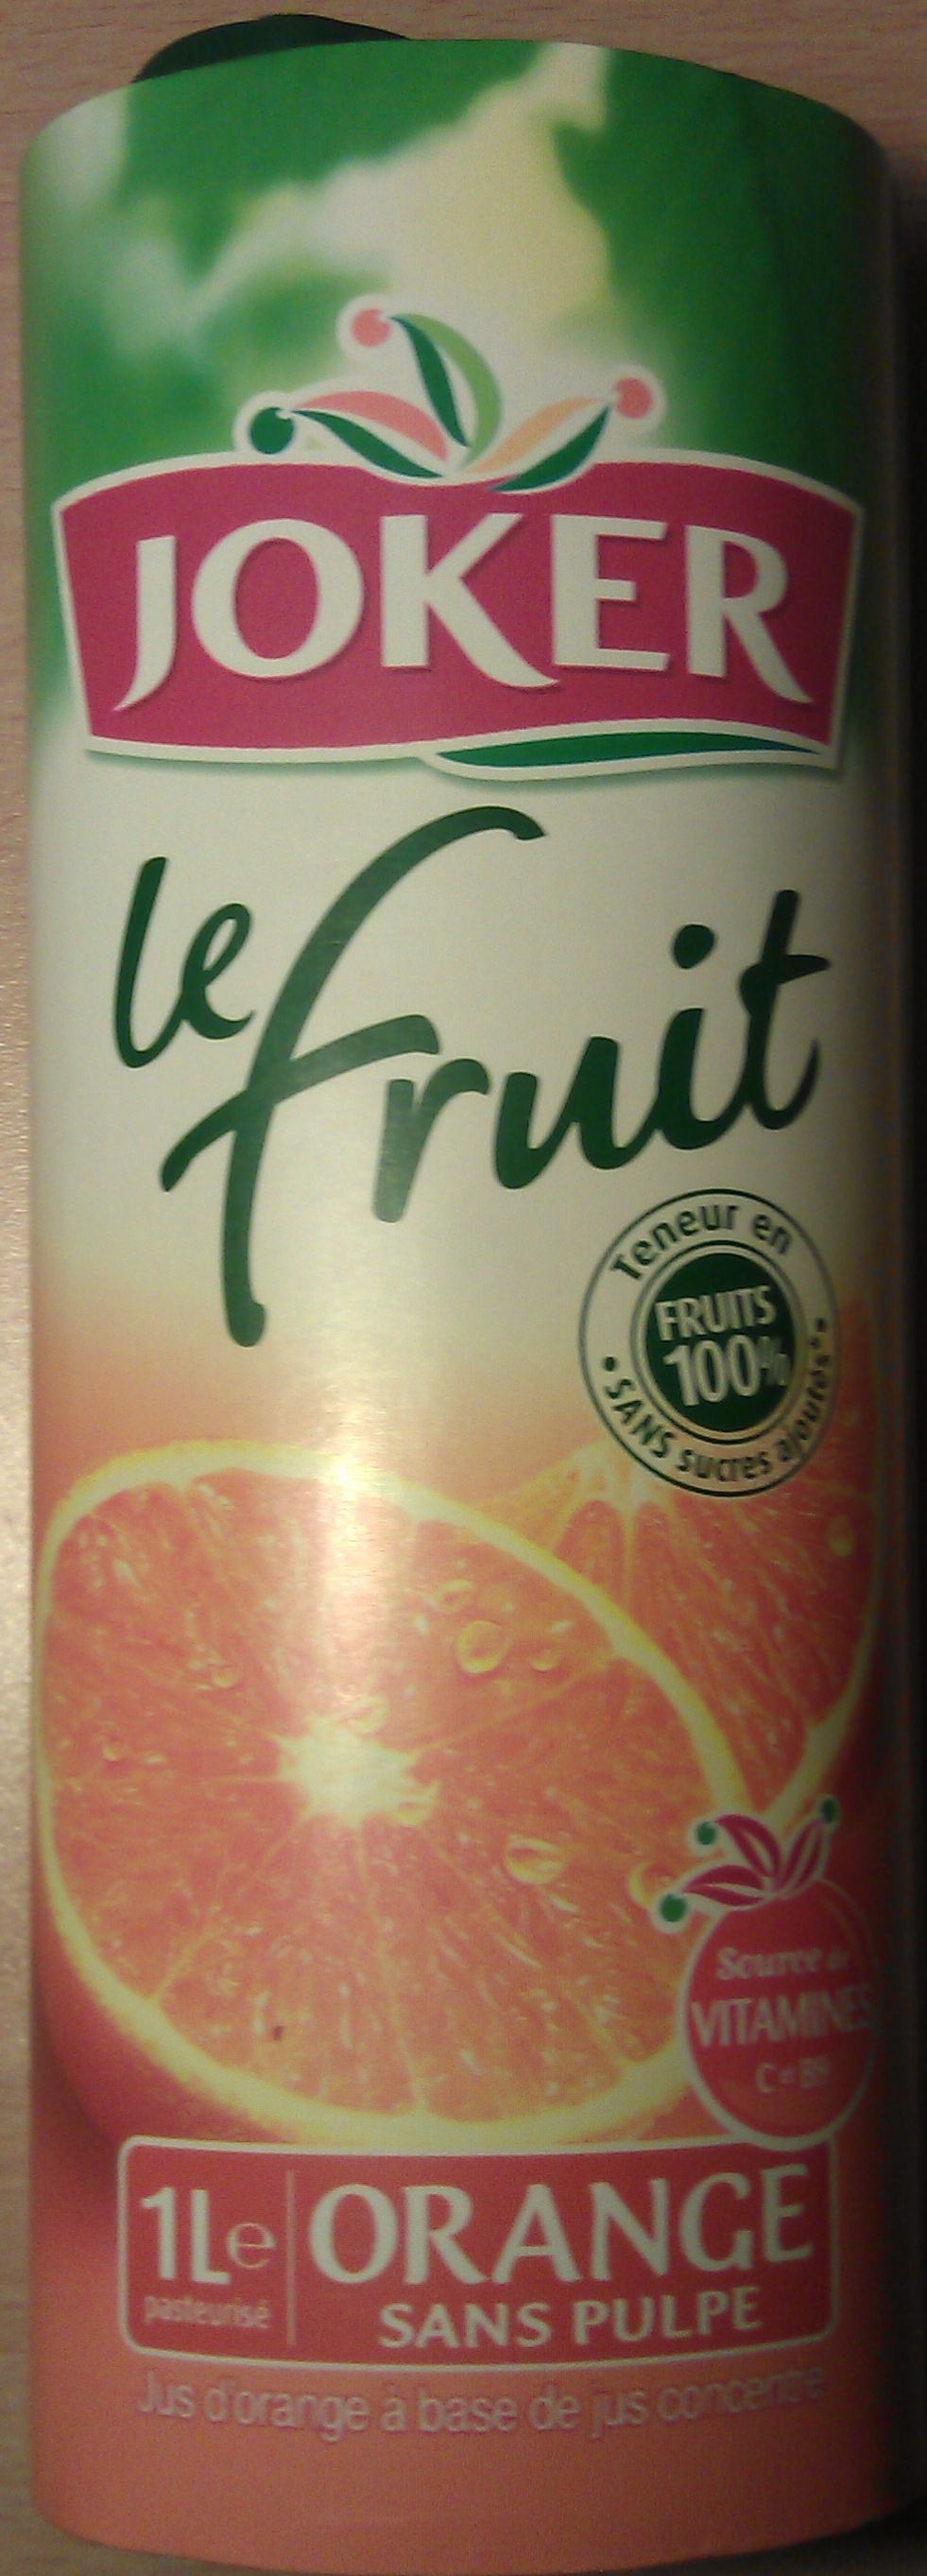 Le Fruit Orange sans Pulpe - Producto